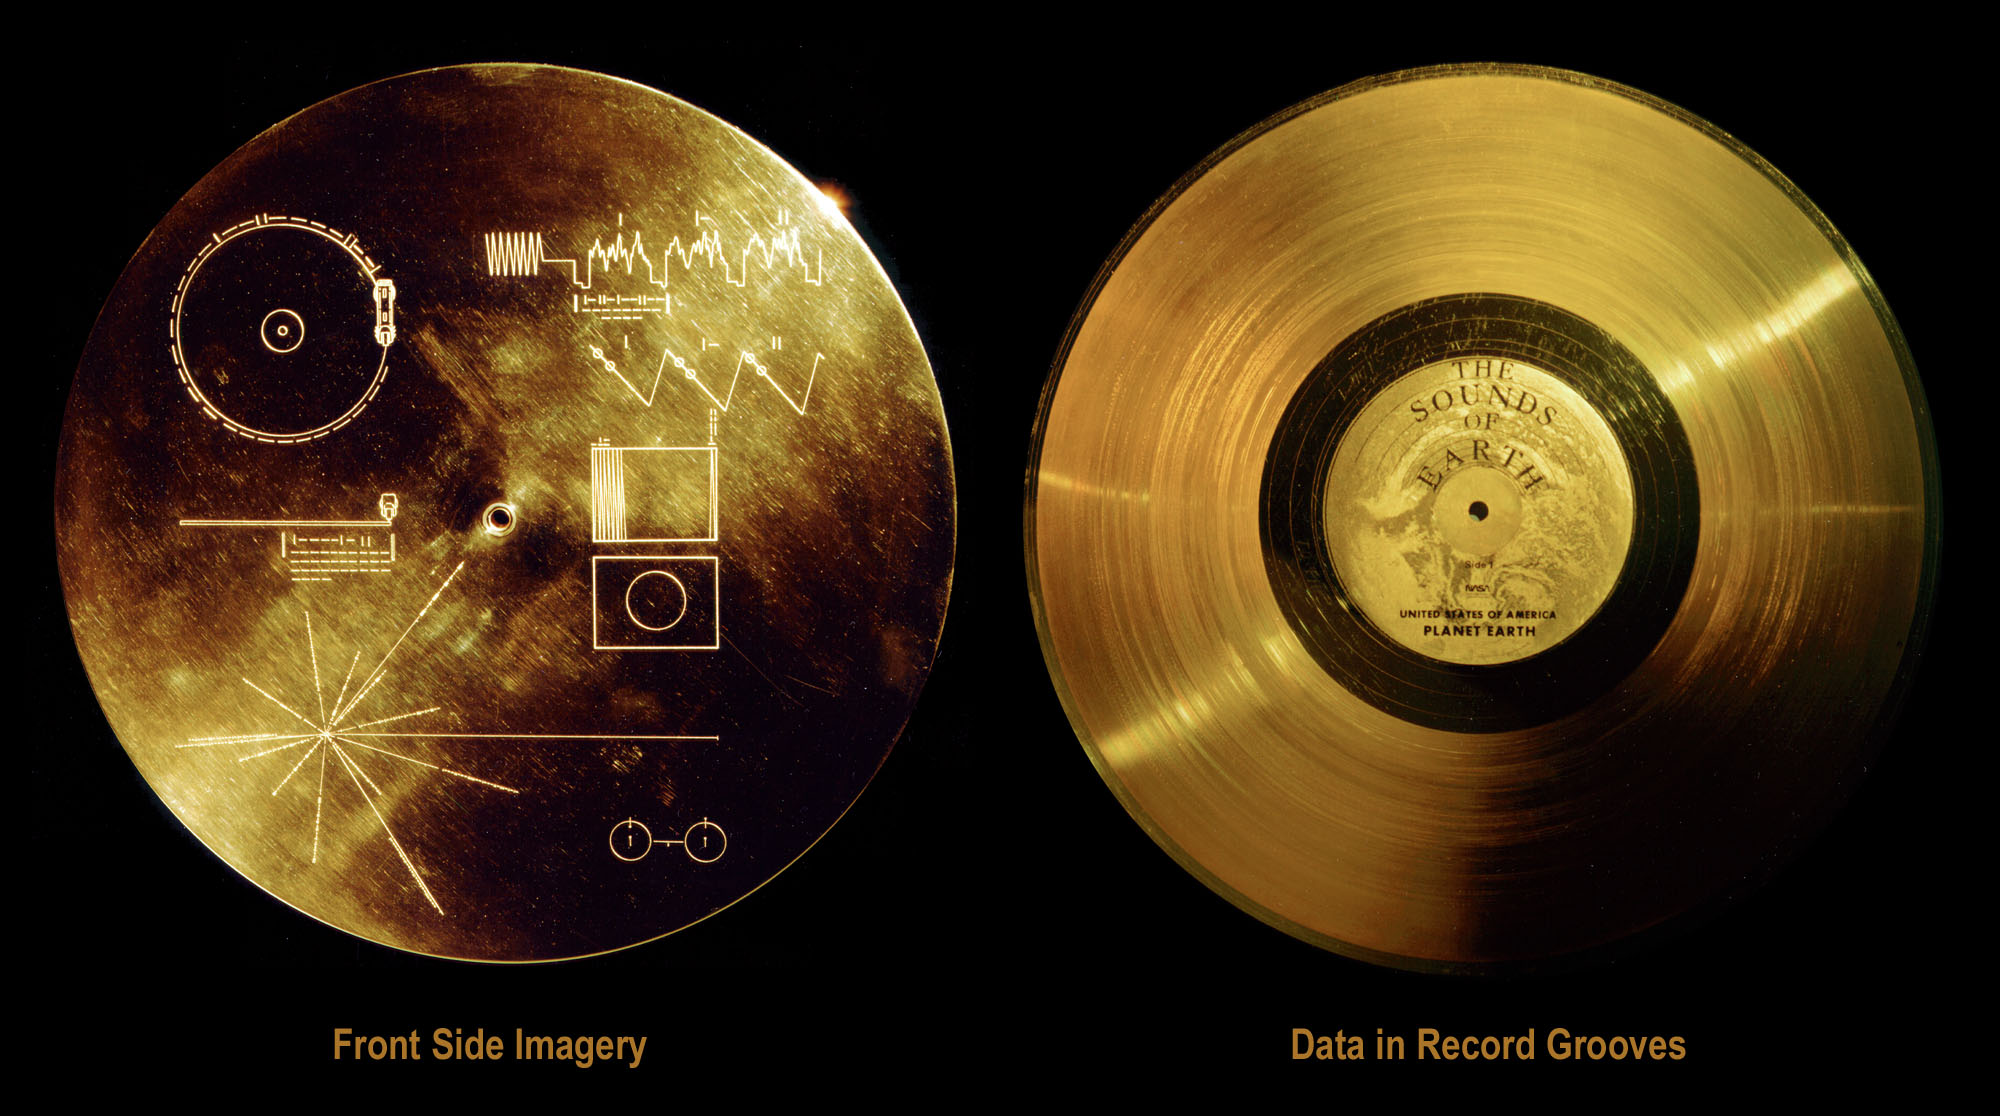 voyager 1 golden record - photo #3